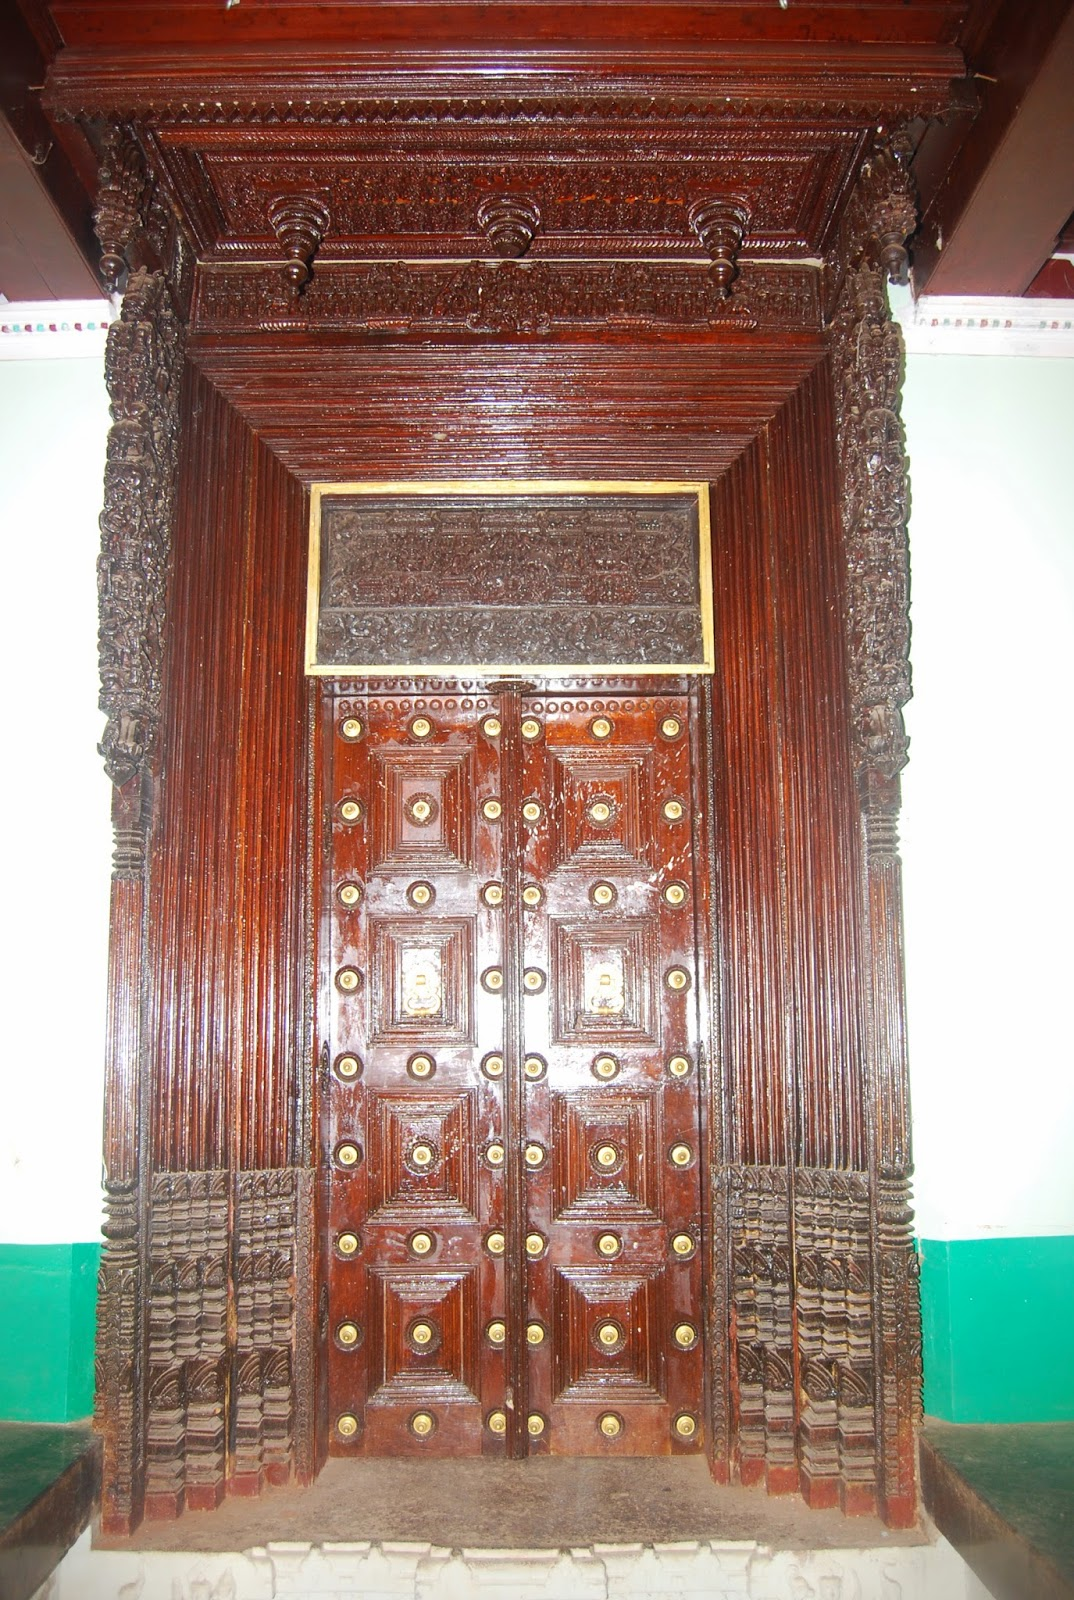 ... adoration basically include antique furniture antique wooden artifacts old paintings old carvings antique wooden doors and used antique furniture. & KARAIKUDI CHETTINADU ARTS: Antiques wooden door and panel in India